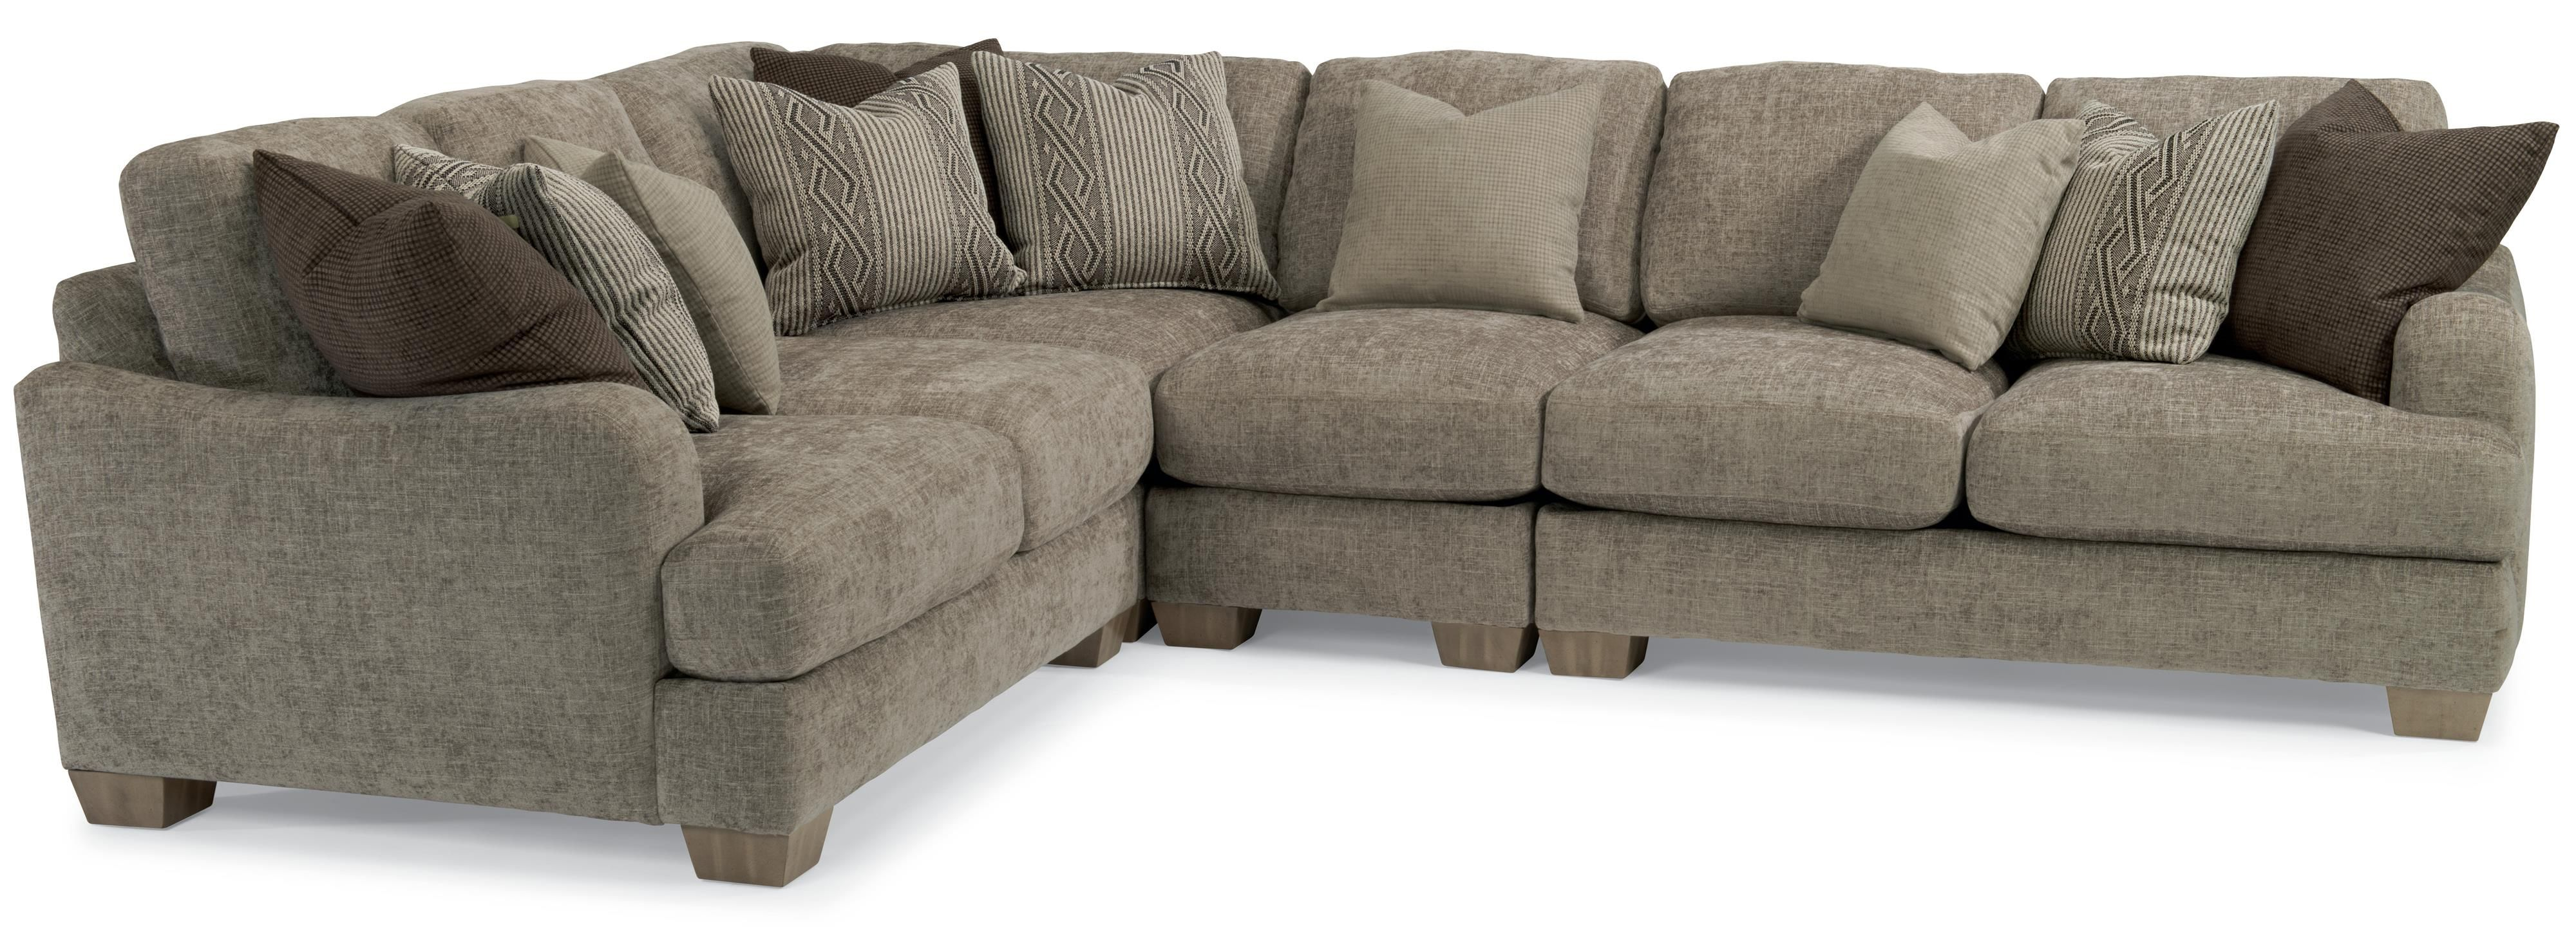 Vanessa Sectional Sofa By Flexsteel Sectional Sofa Cheap Living Room Sets Living Room Sectional